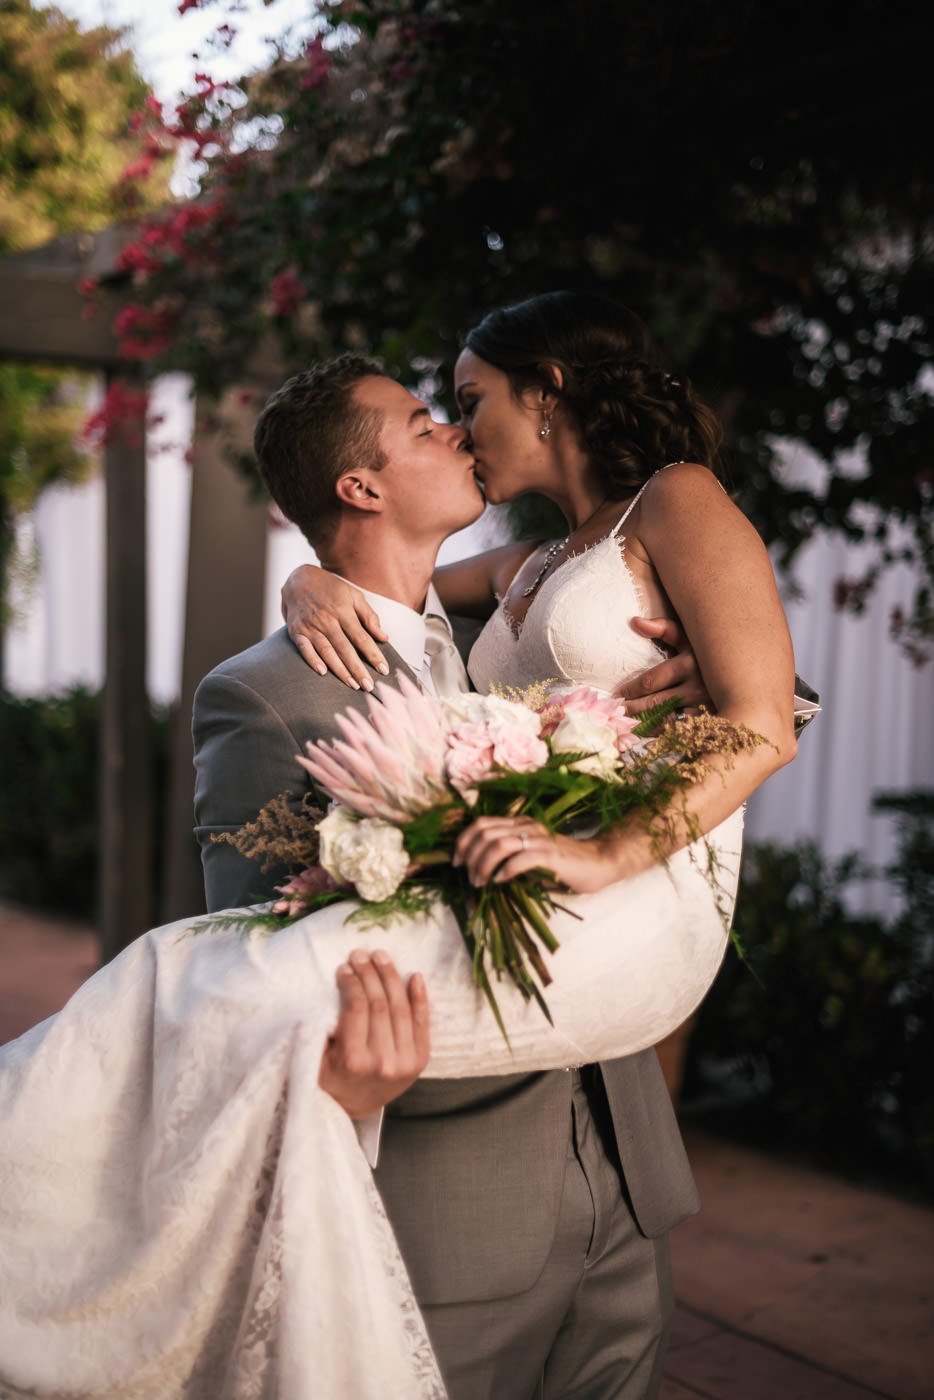 Groom lifts bride to carry her into the reception but stops to give her a romantic kiss at their Marina Village wedding in San Diego.